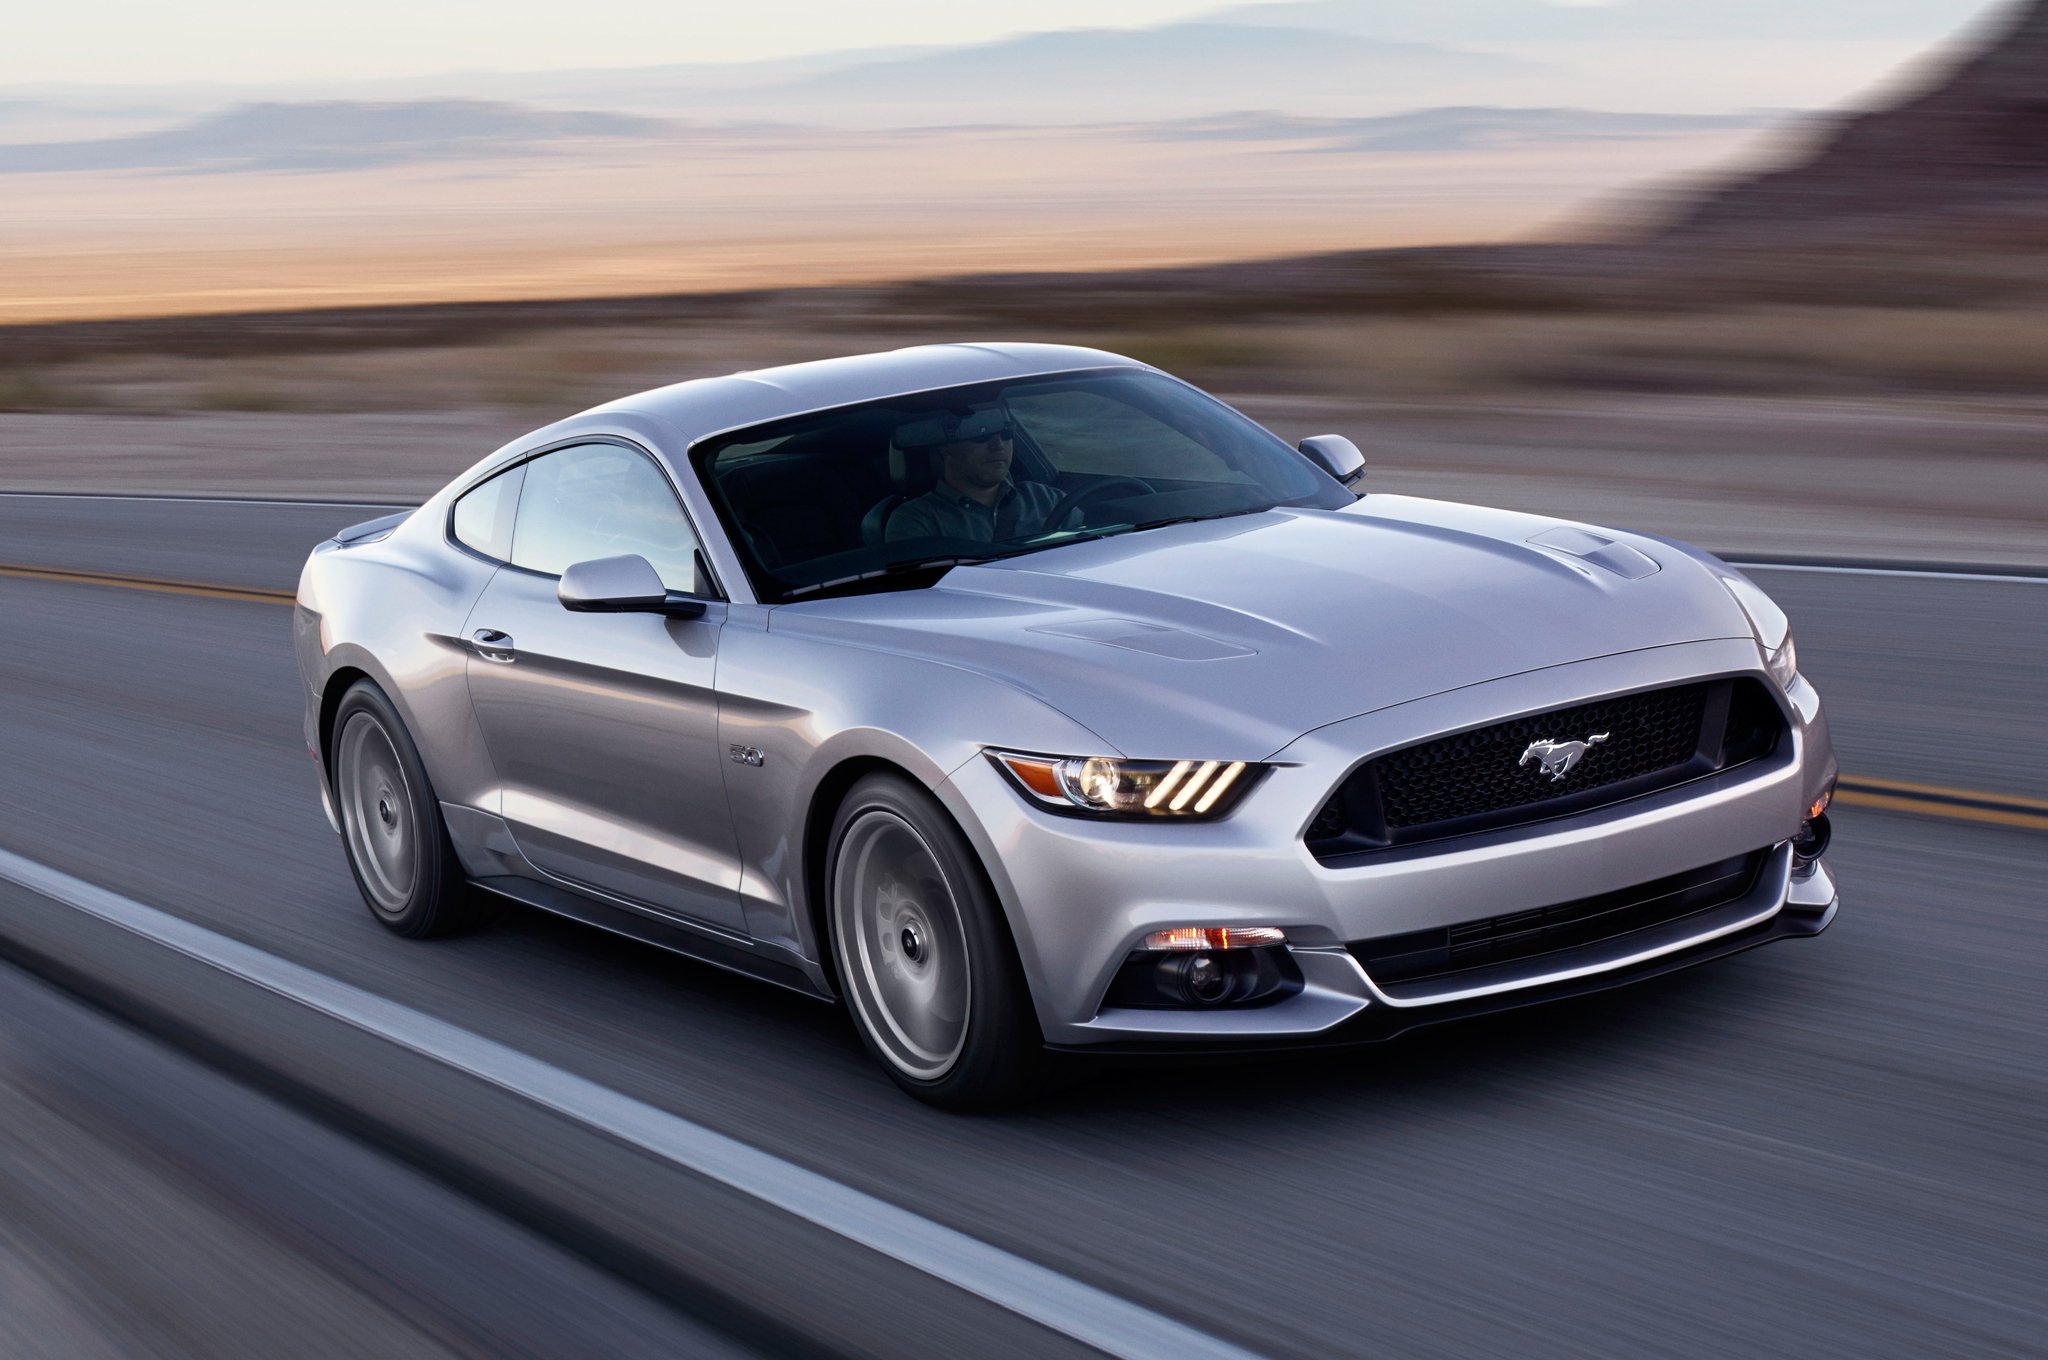 2015 Ford Mustang Silver Performance (Photo 27 of 30)